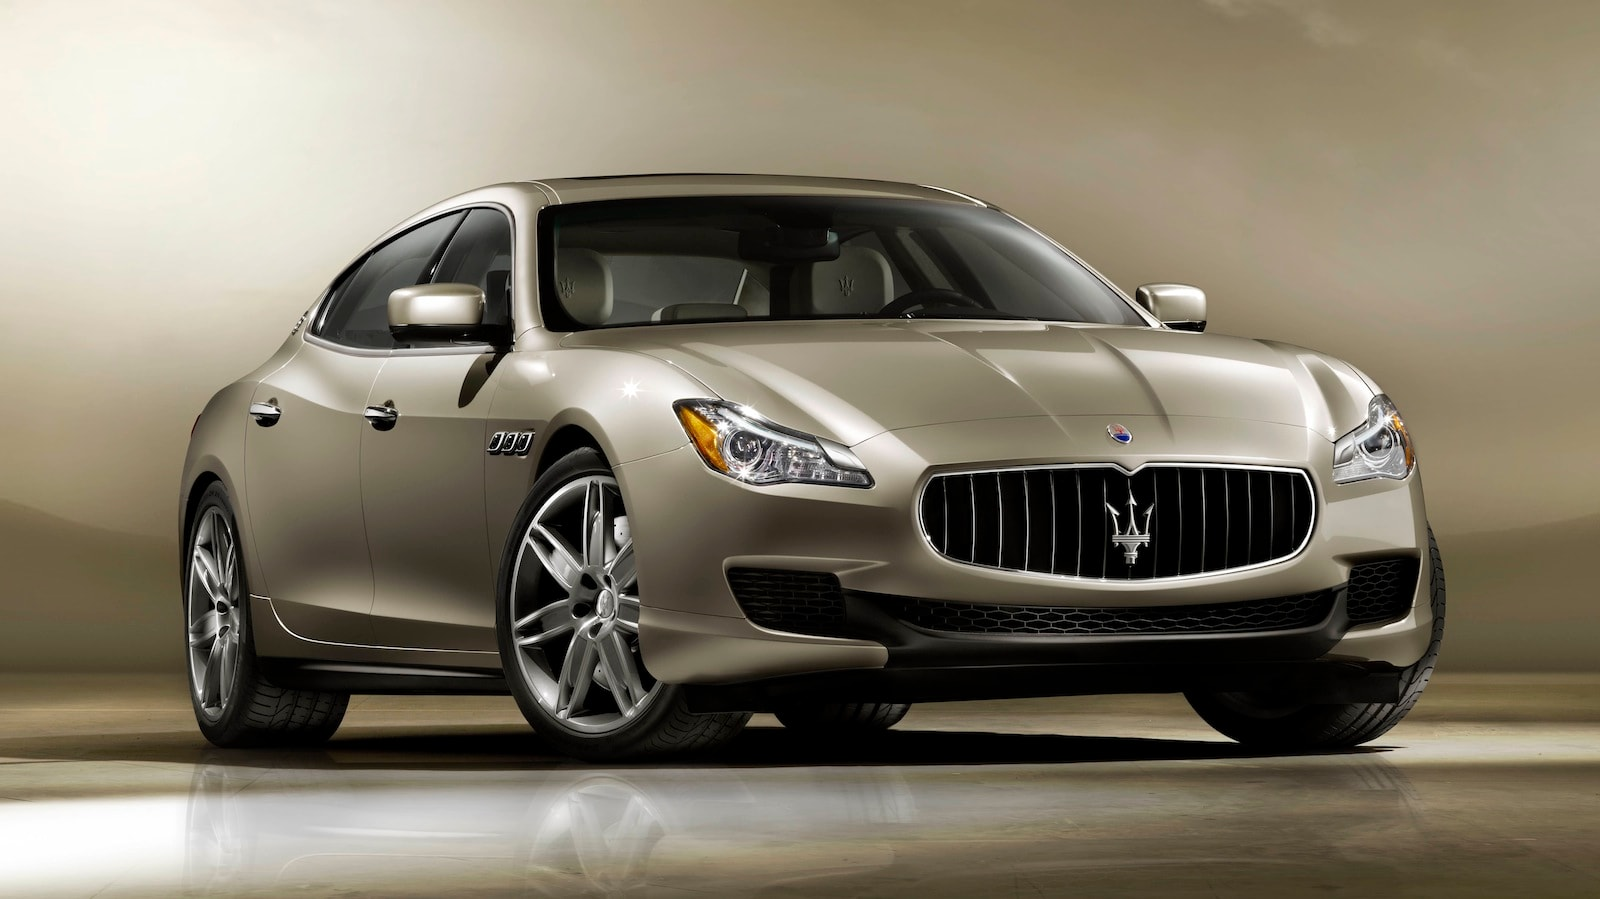 2015 Maserati Quattroporte by Novitec Tridente - YouTube